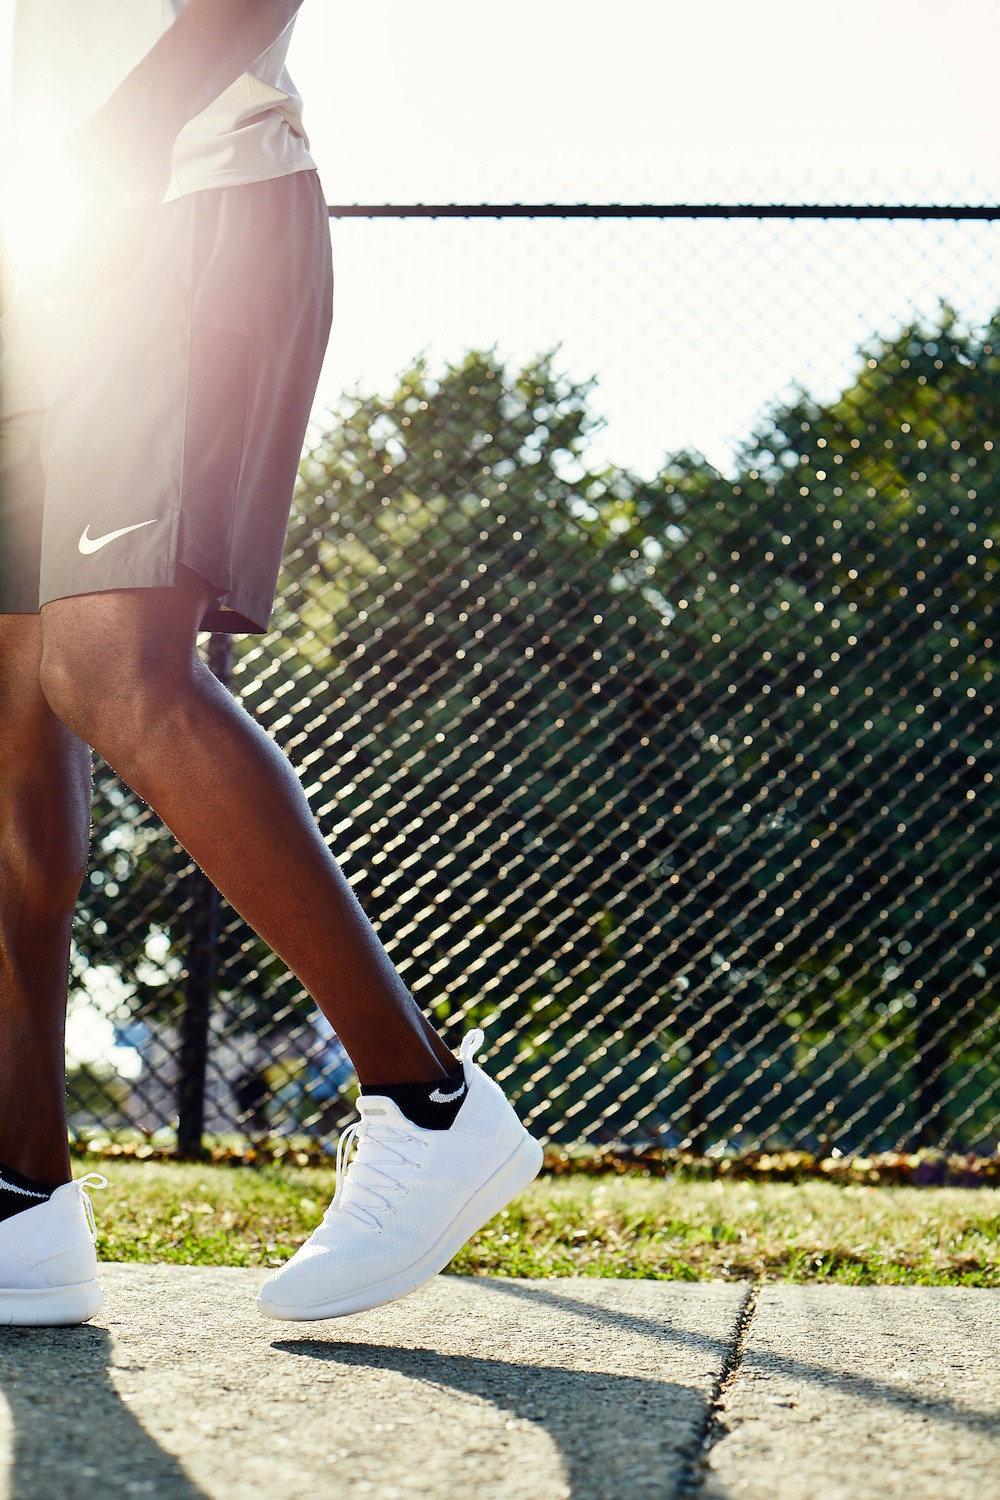 Nike-shorts-socks-park-session.jpg